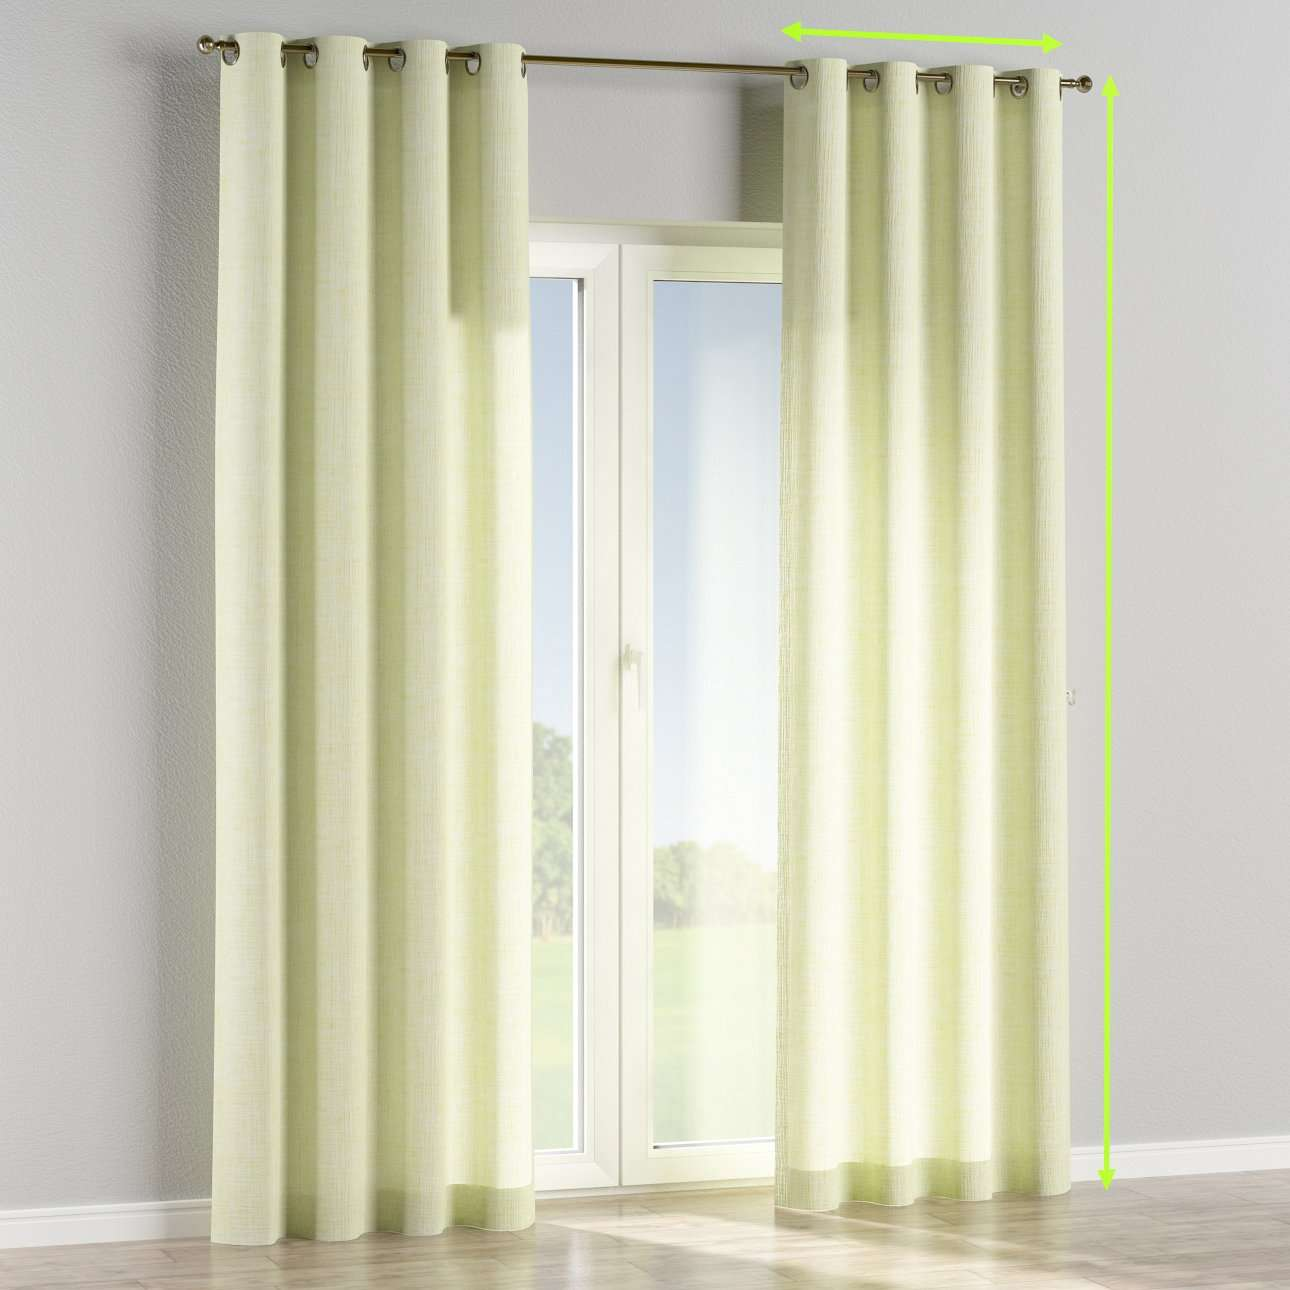 Eyelet curtains in collection Aquarelle, fabric: 140-73